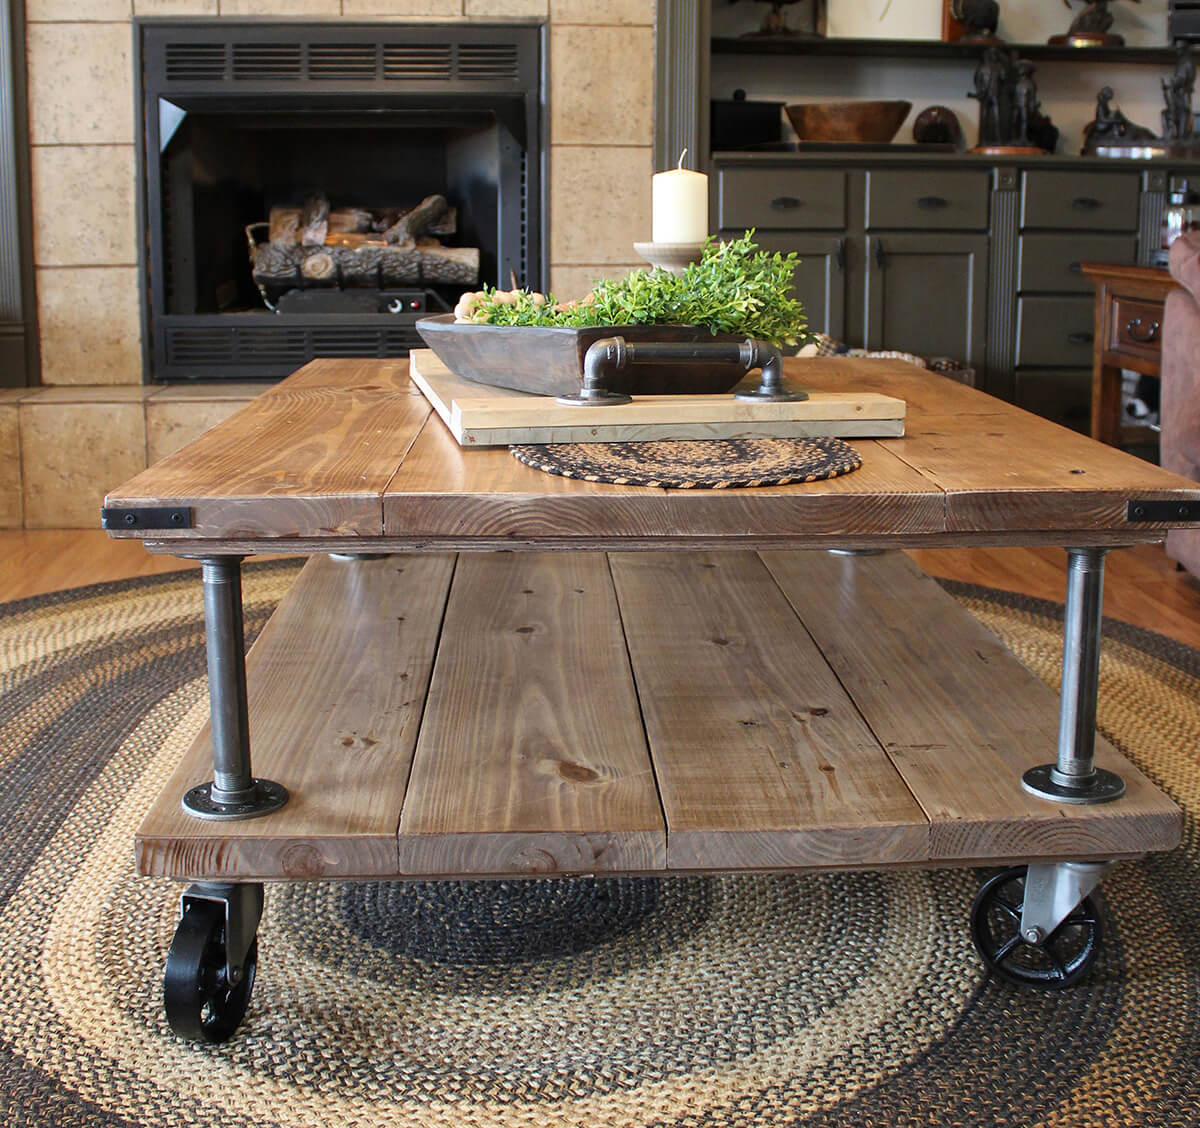 Mobile Vintage, Rustic and Beautiful Table